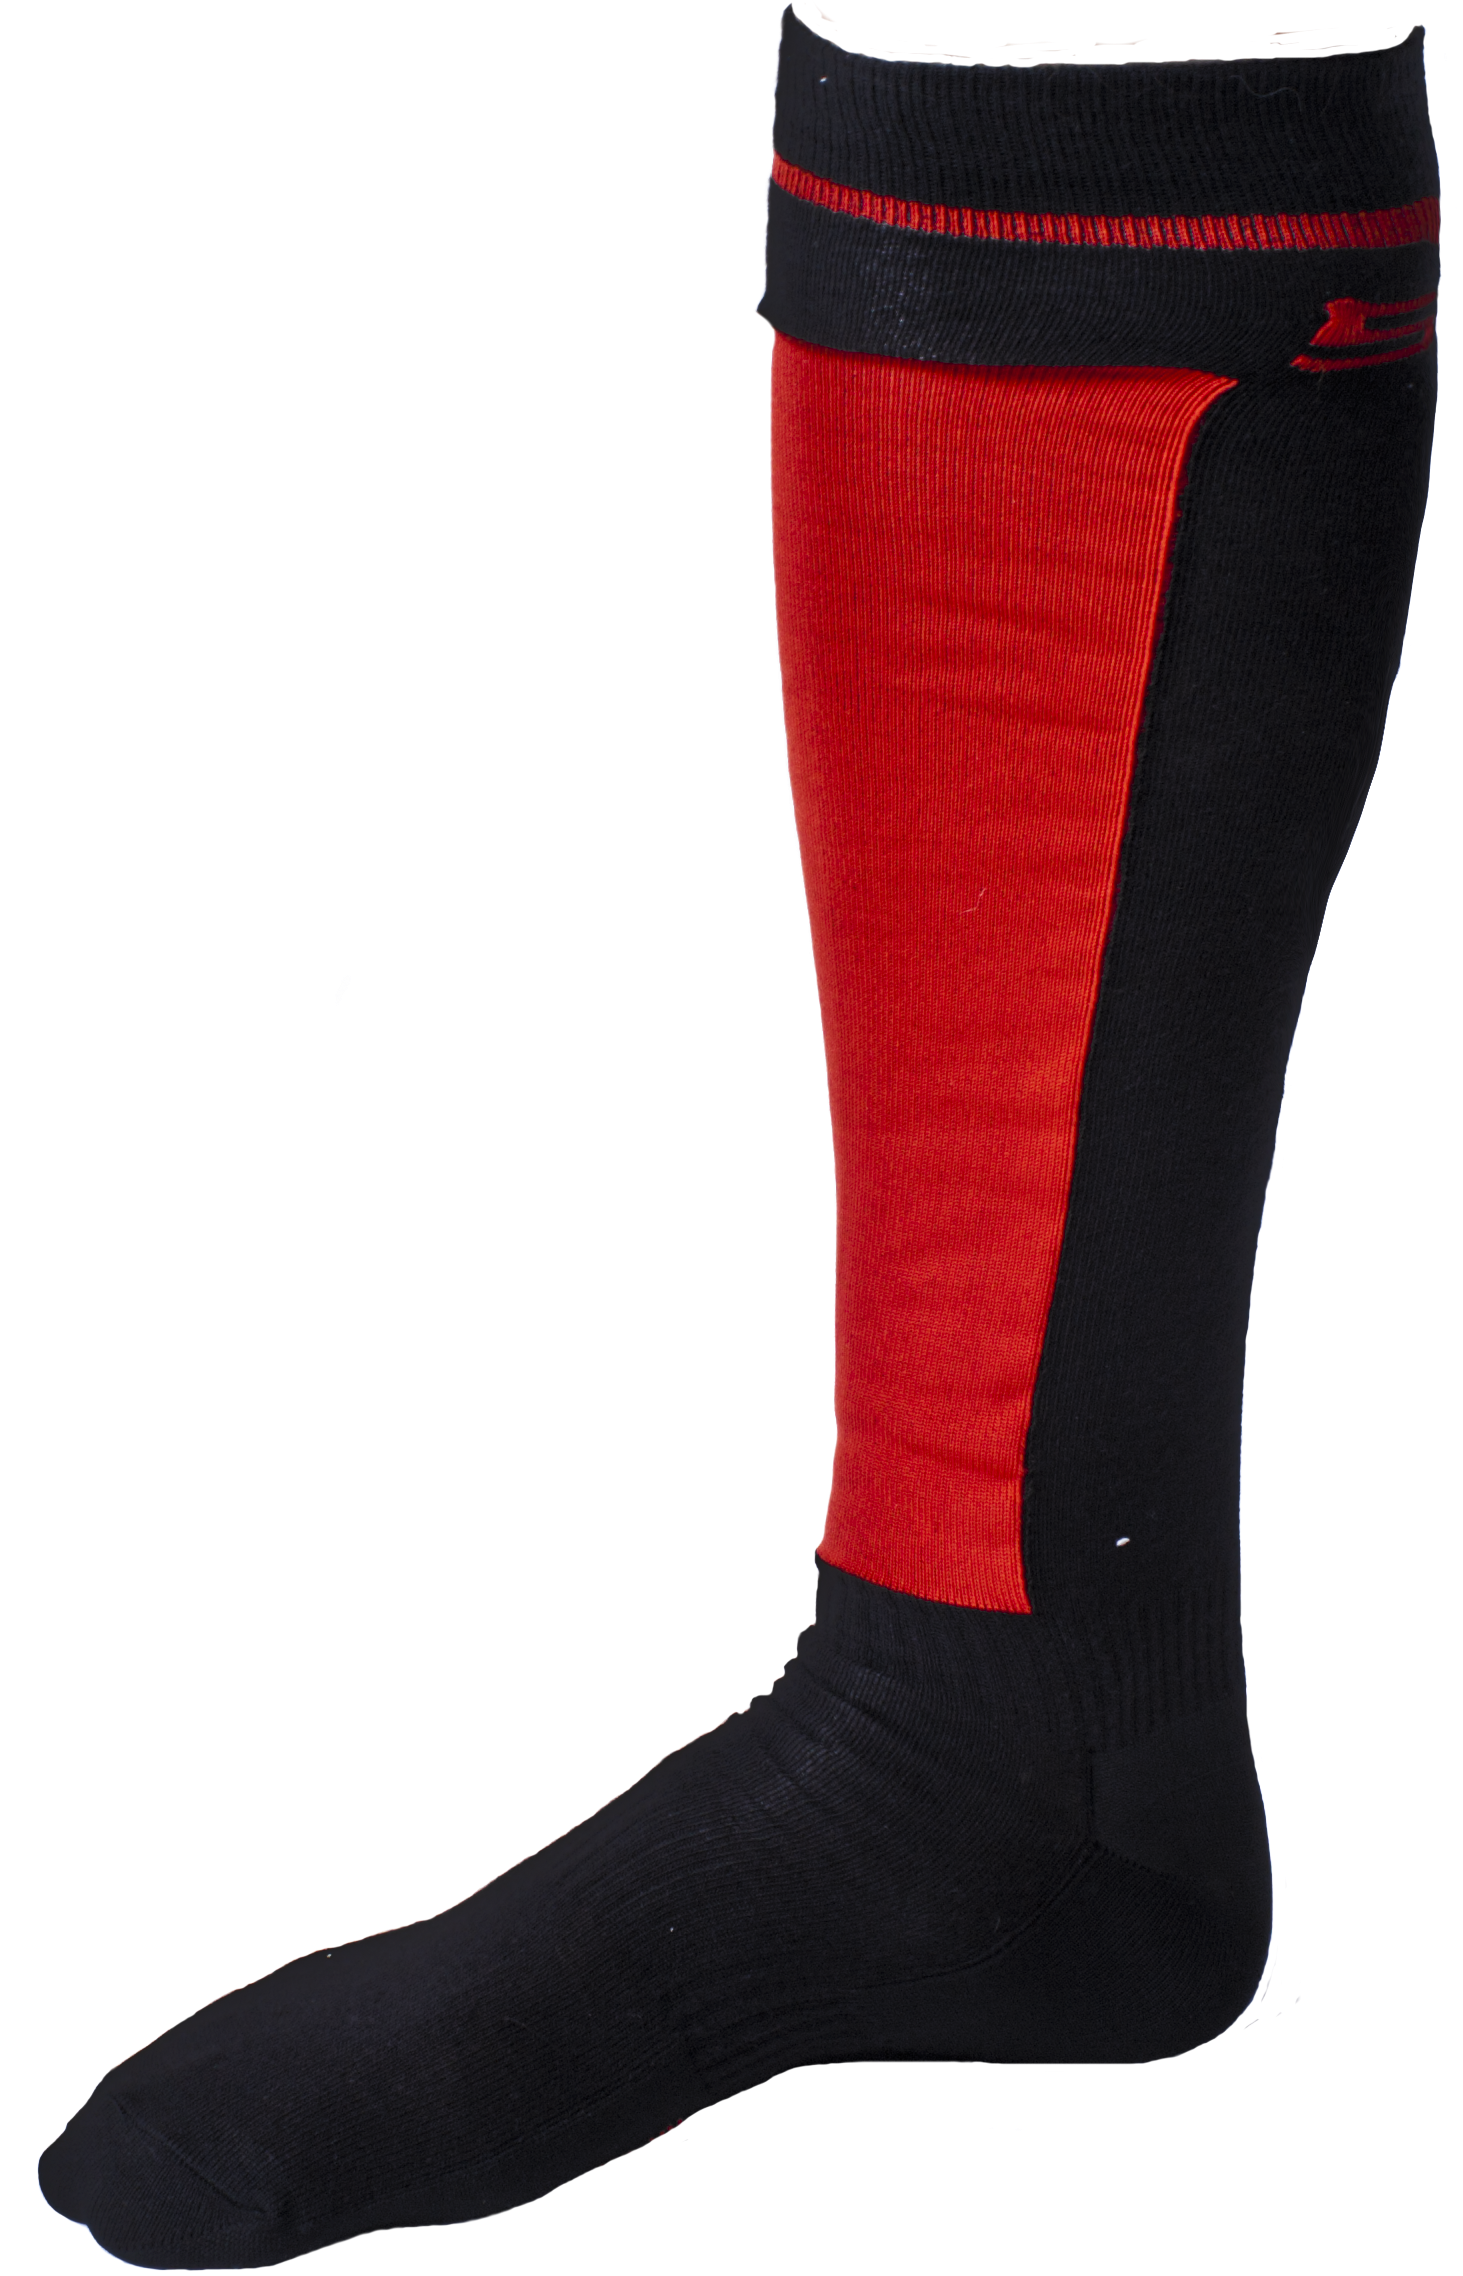 Red Socks PNG Image (With images) Socks, Red, Red sox